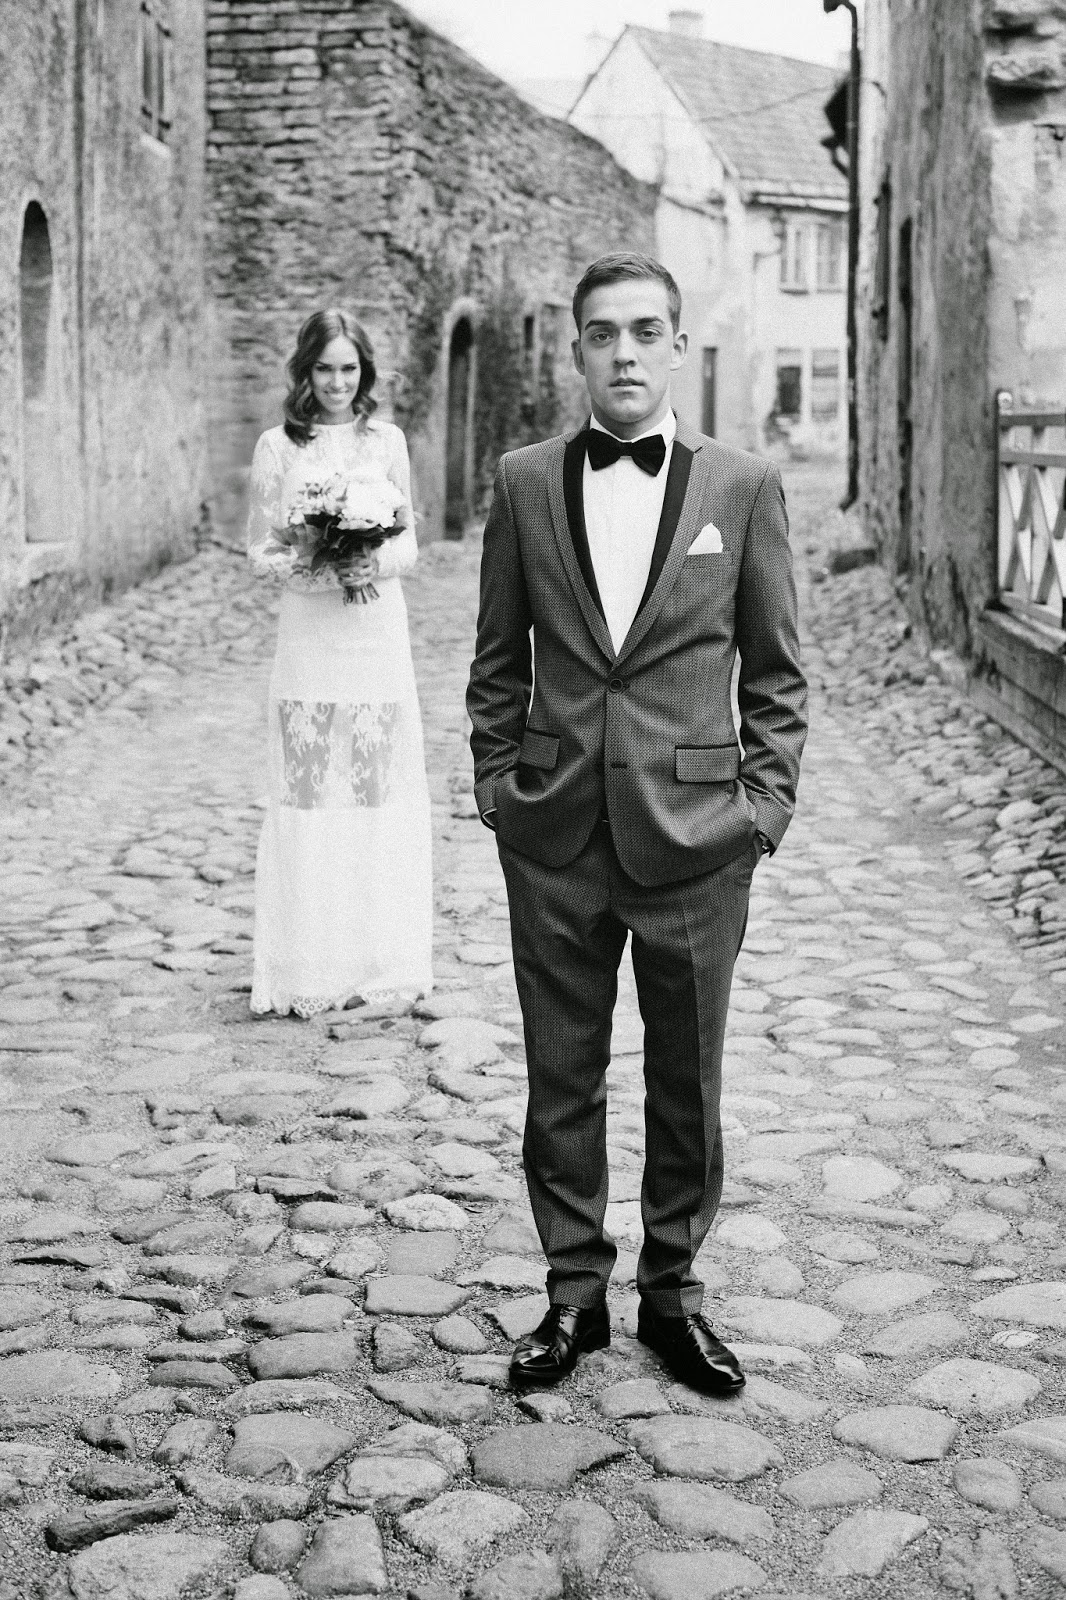 wedding-bride-groom-old-town-lace-dress-gray-suit kristjaana ja richard mere pulm